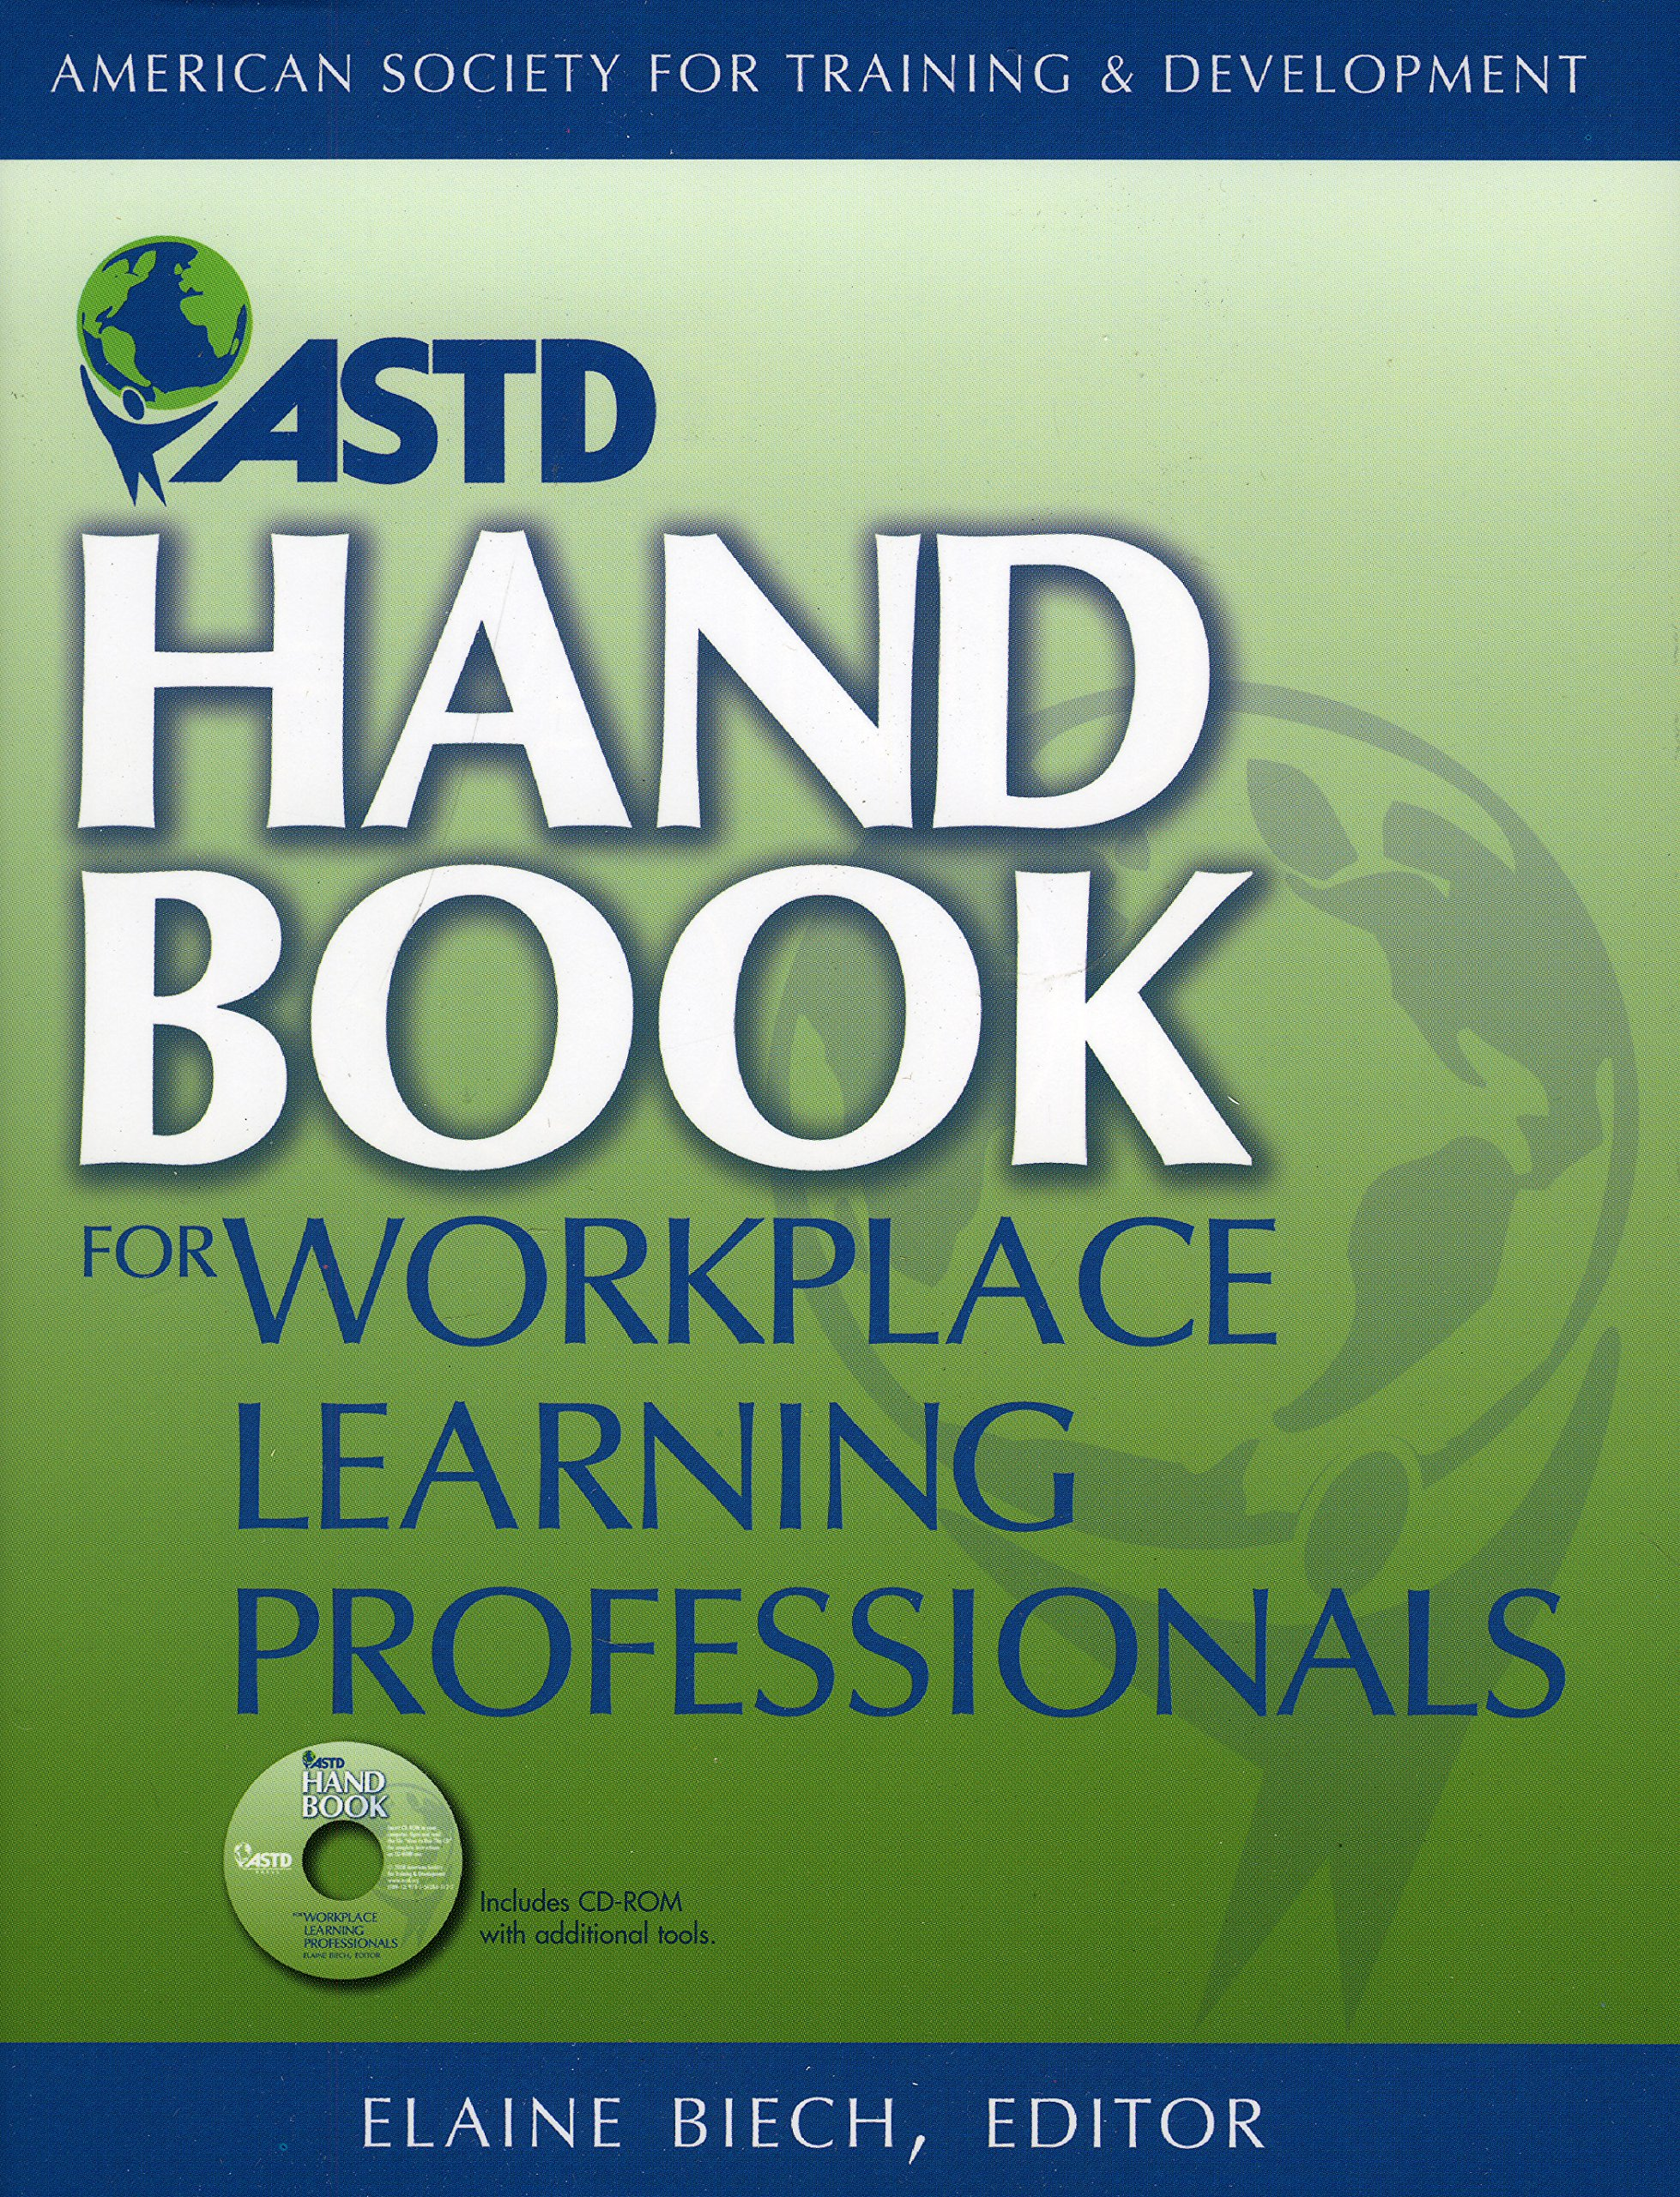 ASTD Handbook For Workplace Learning Professionals ebook